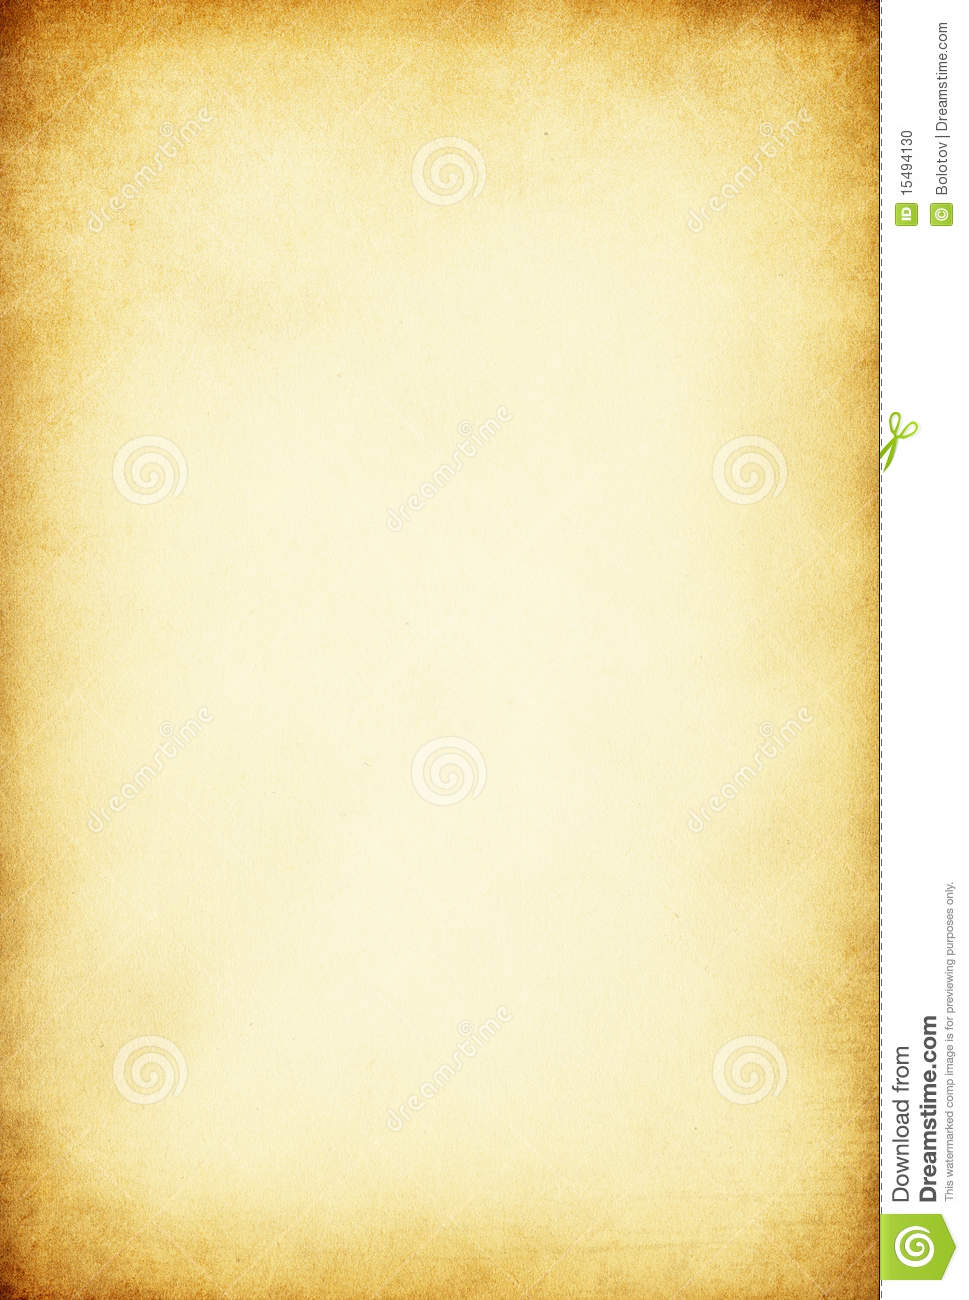 Vintage Old Paper Background Stock Photo - Image: 15494130